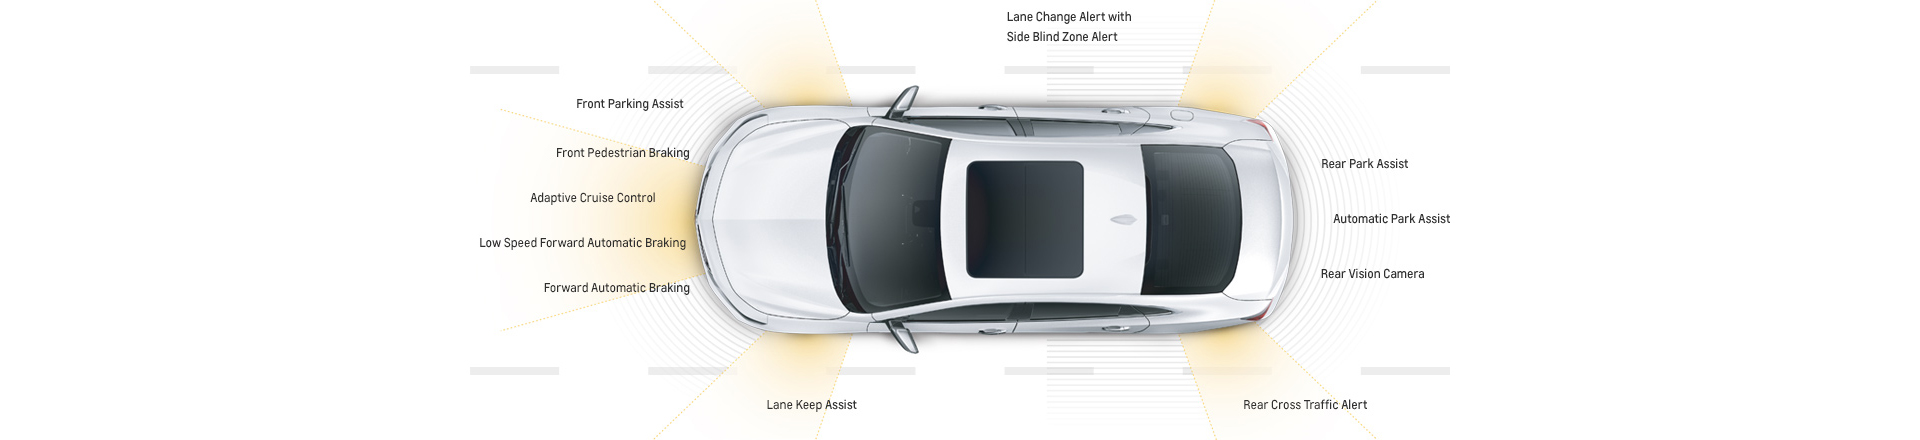 A diagram is shown of the safety features of the 2017 Chevy Malibu.